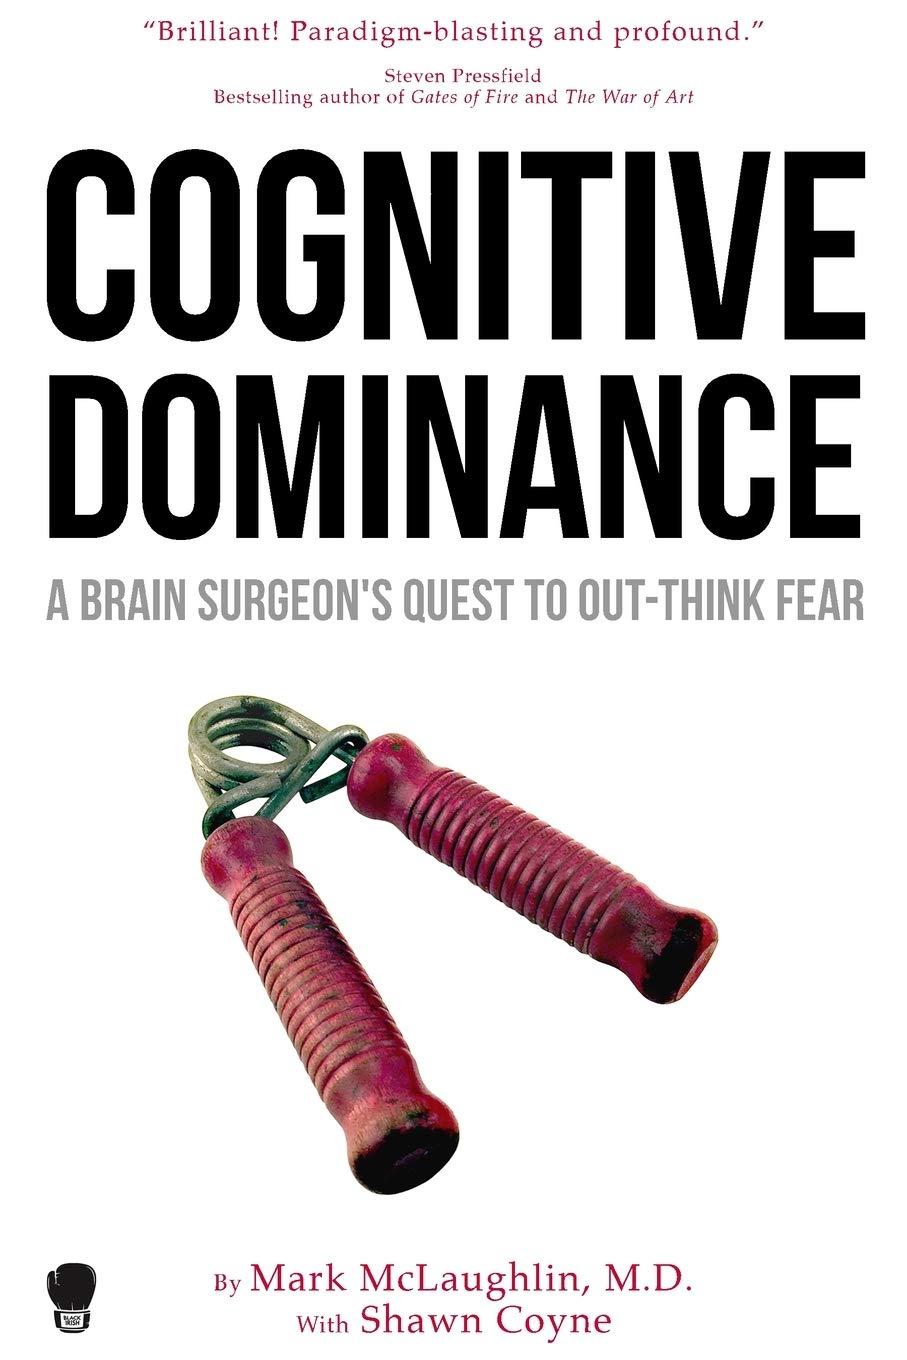 Cognitive Dominance: A Brain Surgeon's Quest to Out-Think Fear: McLaughlin,  Dr. Mark, Coyne, Shawn: 9781936891627: Amazon.com: Books